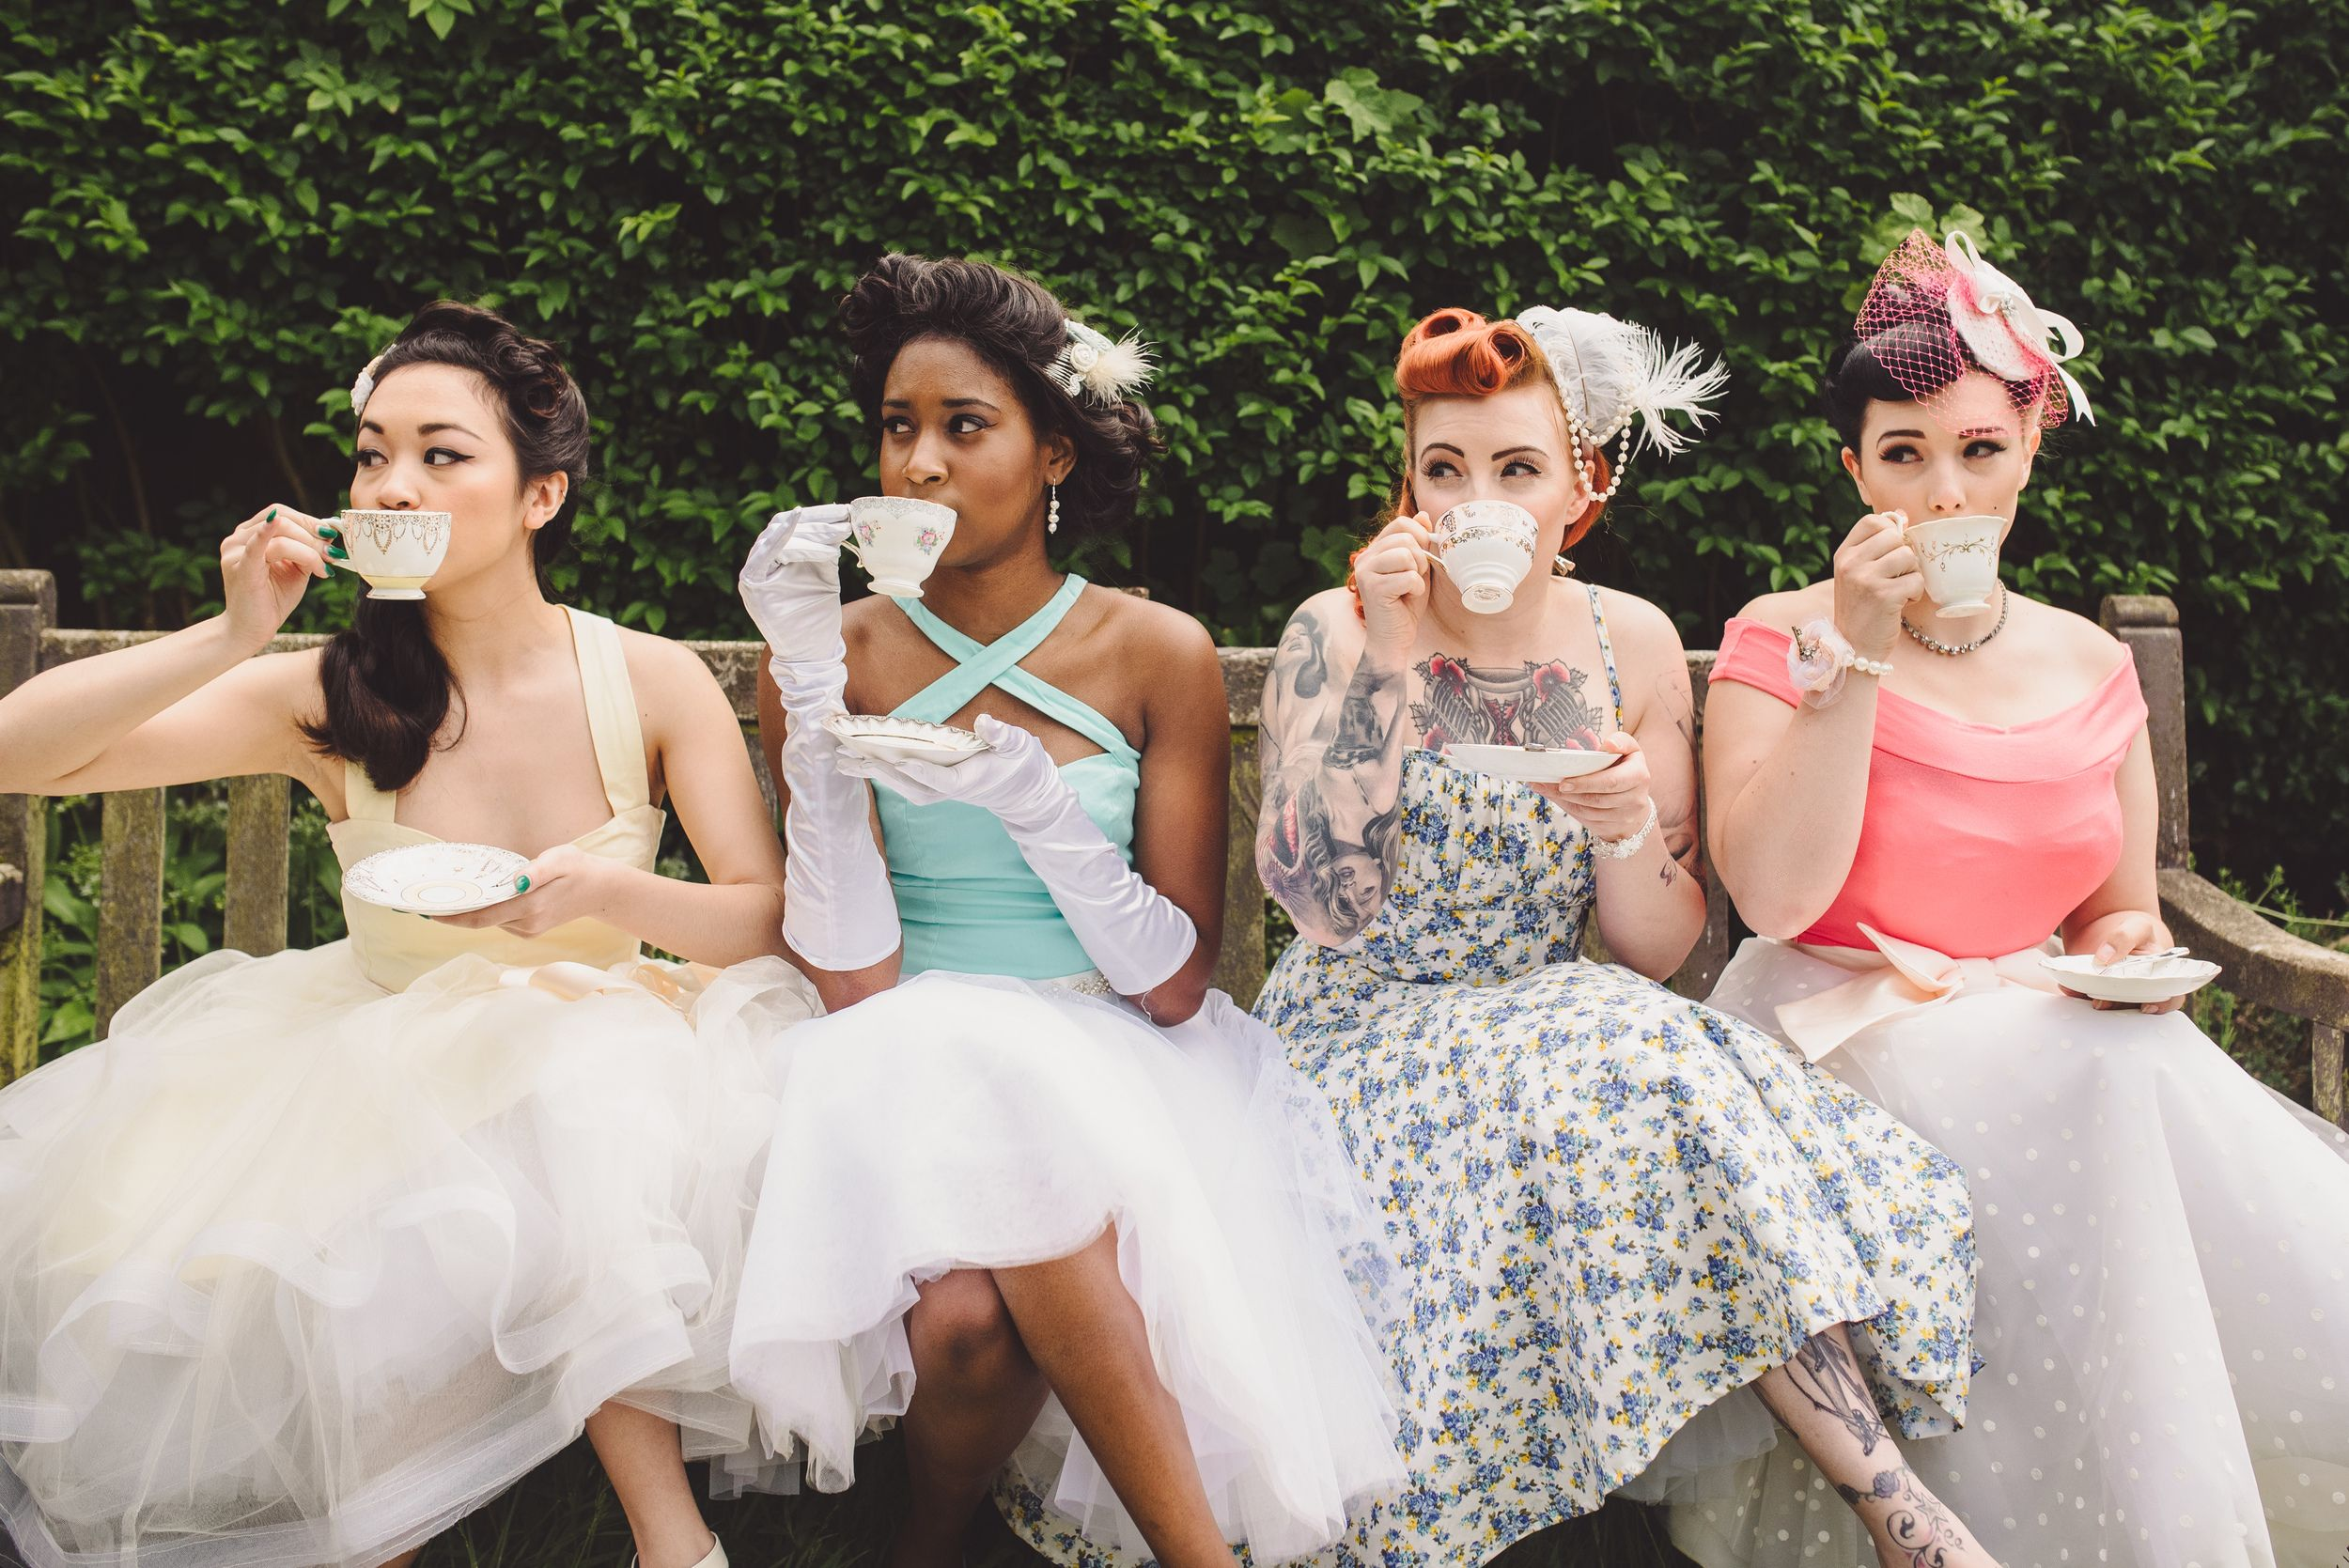 Rockabilly Bride — And So To Wed - handmade wedding blog magazine